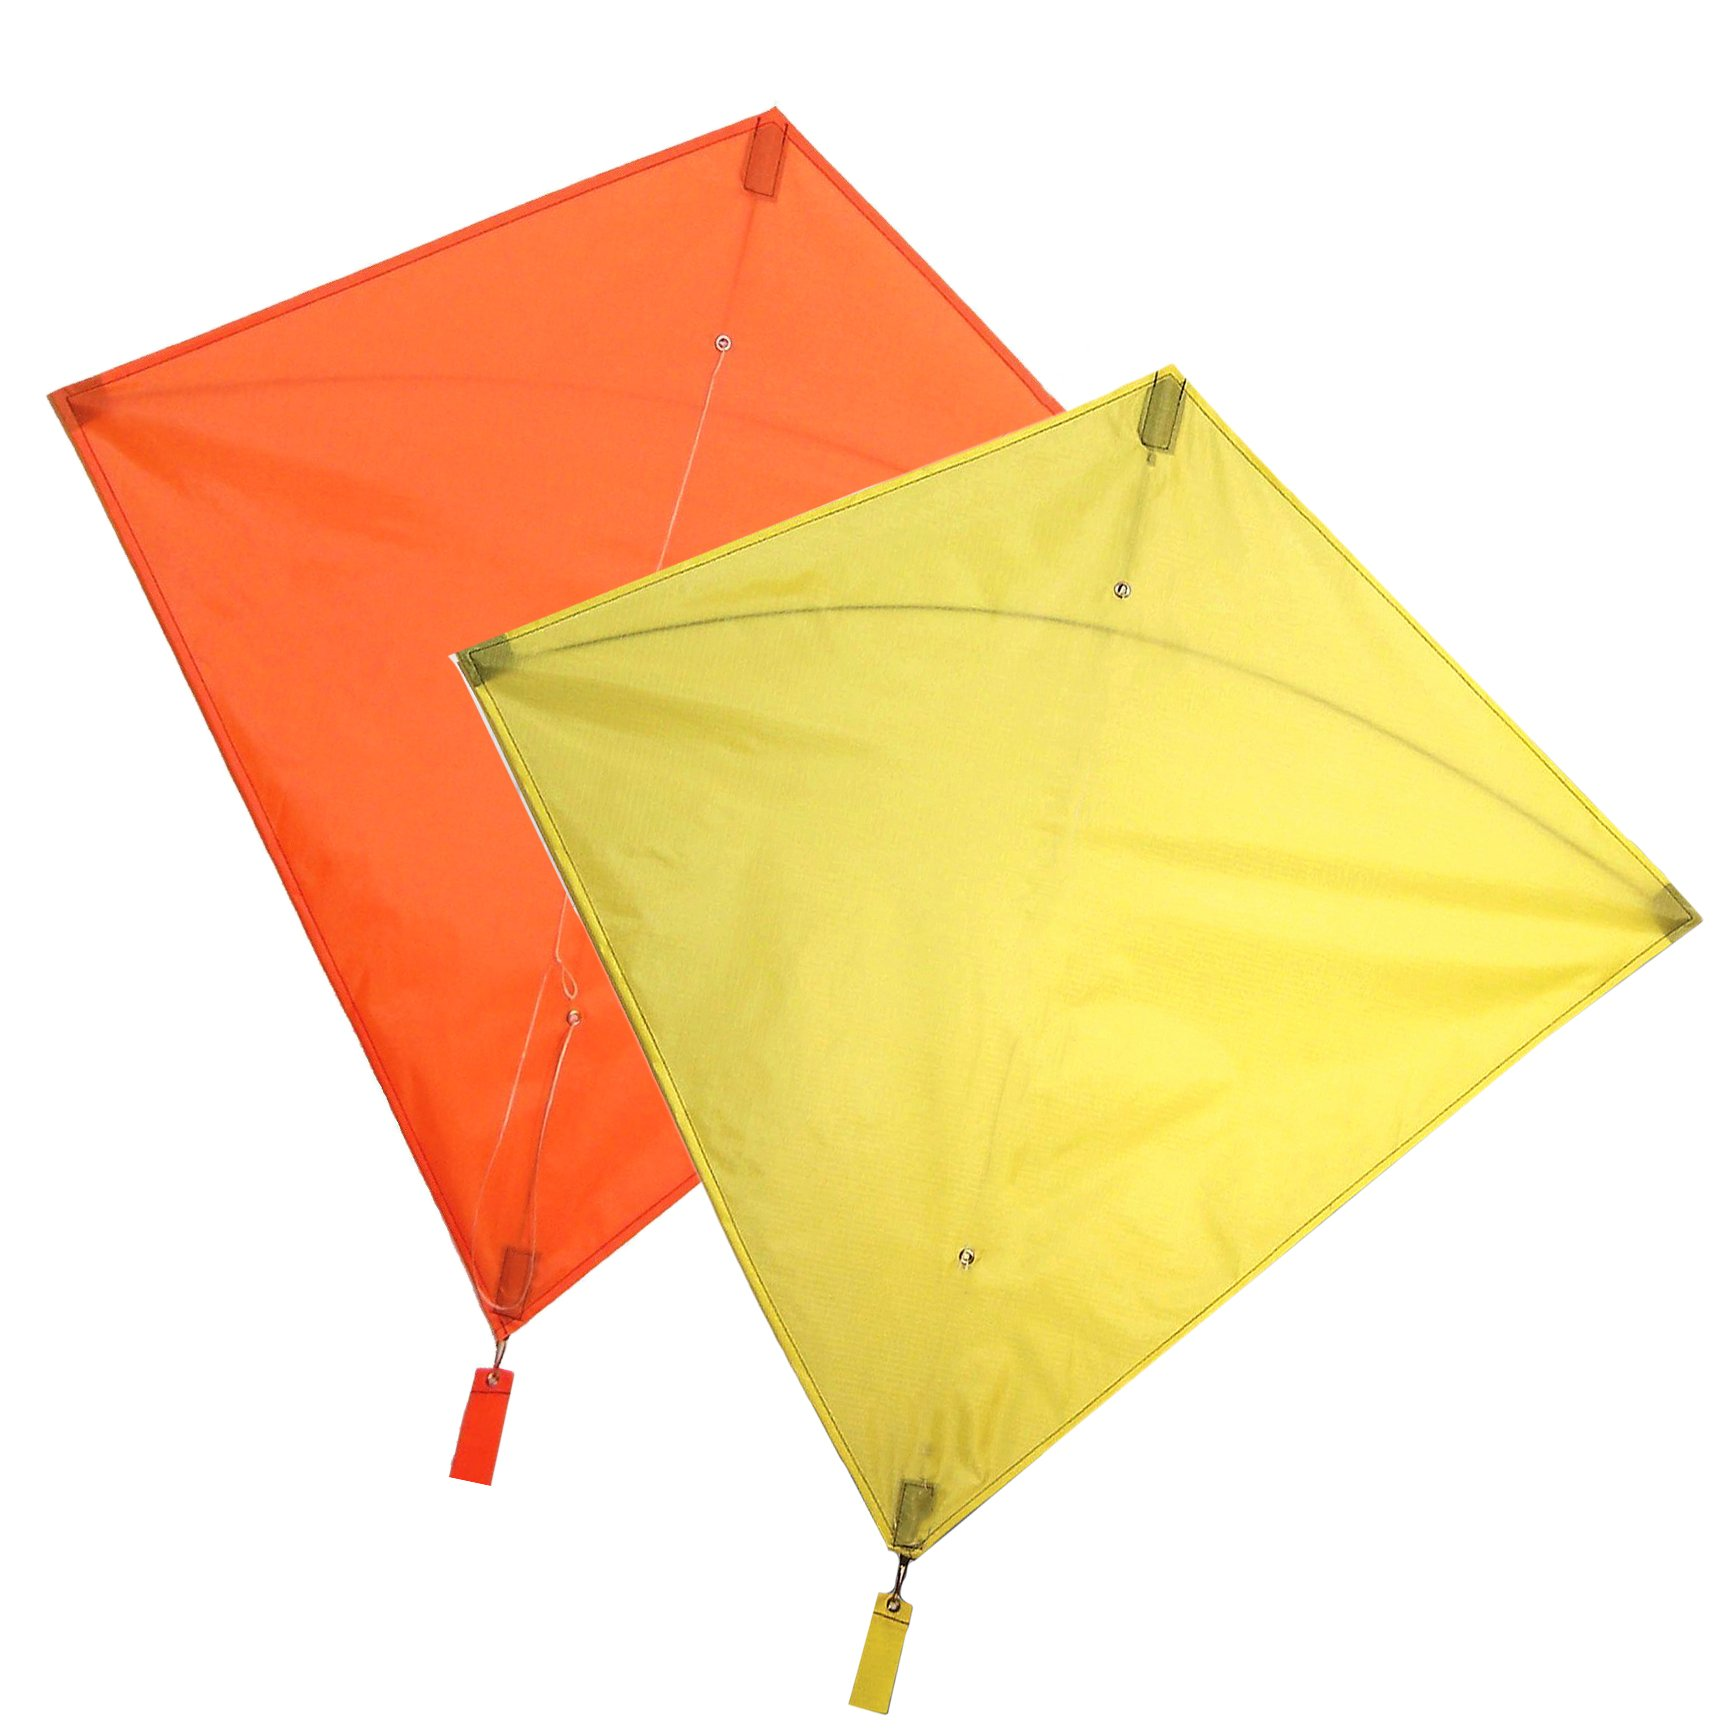 Maven Gifts: In The Breeze 2-Pack Kite Bundle – 30-Inch Orange Colorfly Diamond Kite with 30-Inch Yellow Colorfly Diamond Kite – Great for Beginners and Kids